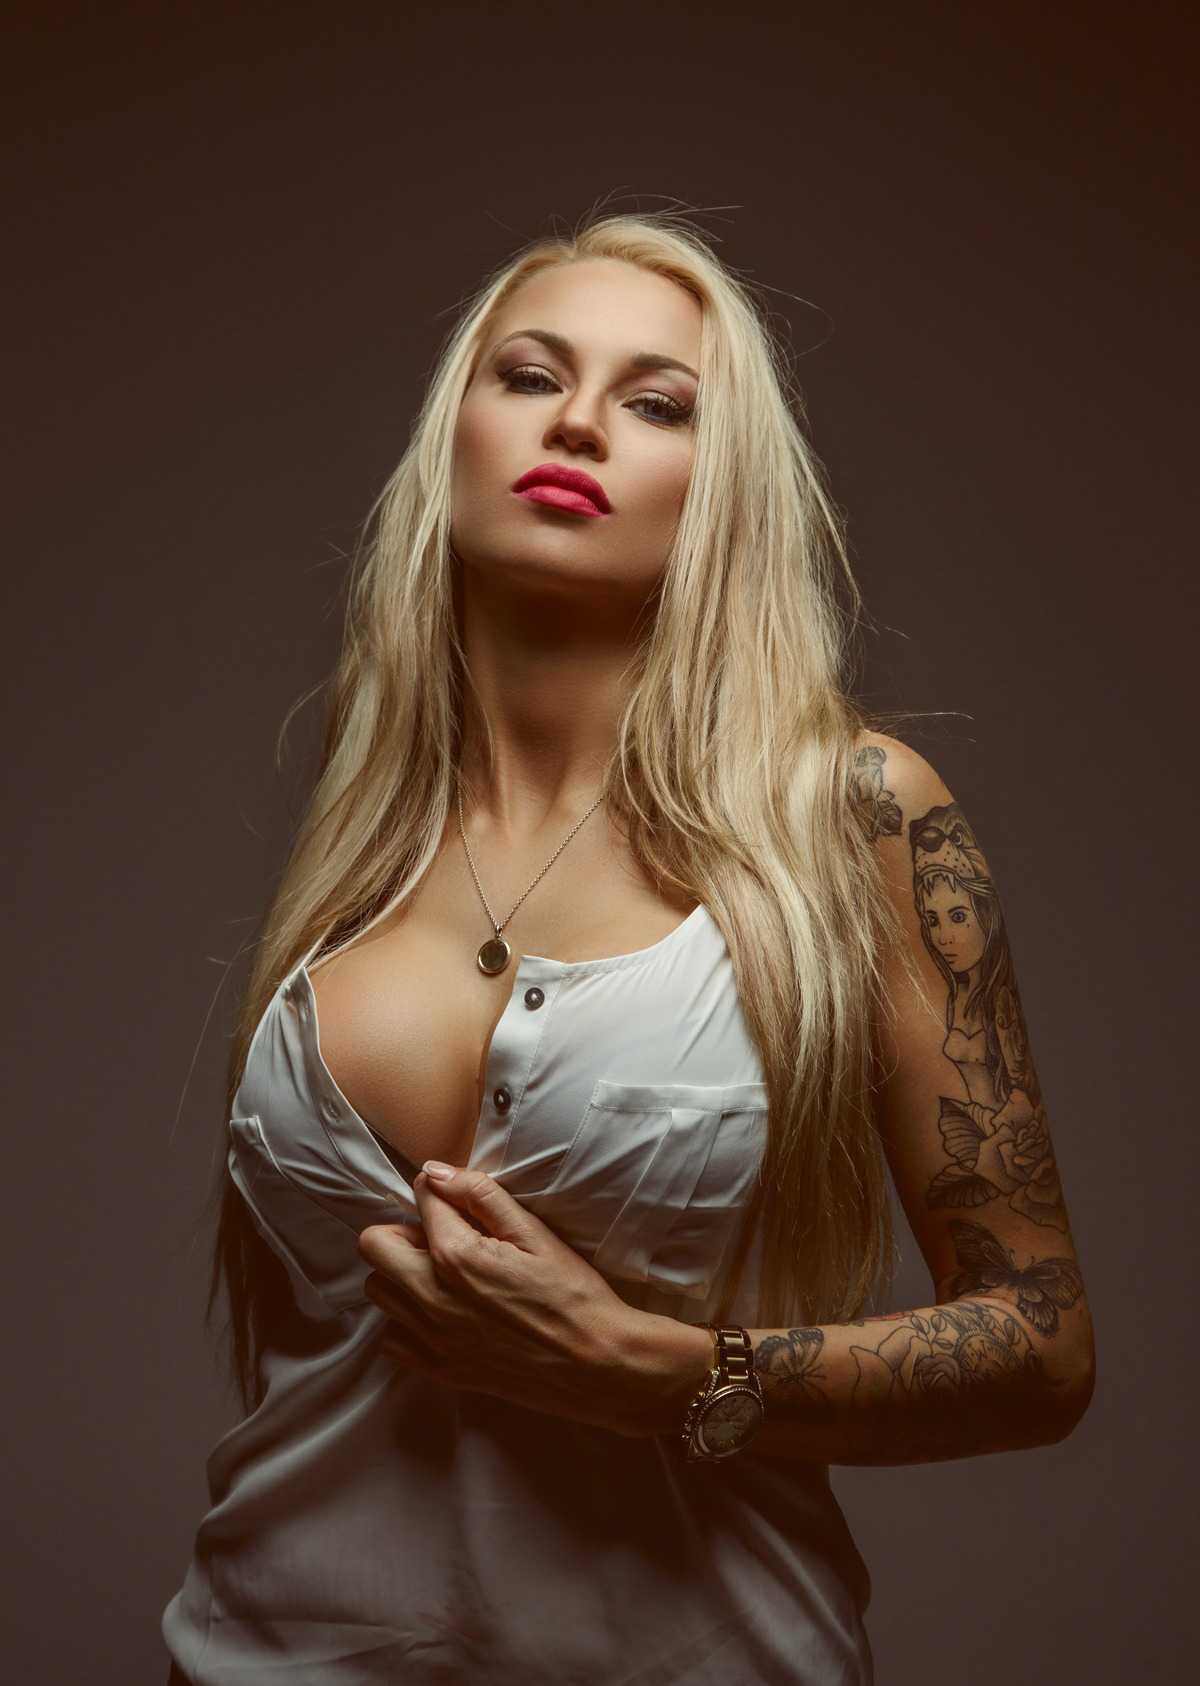 Sexy Blondine mit Tattoos